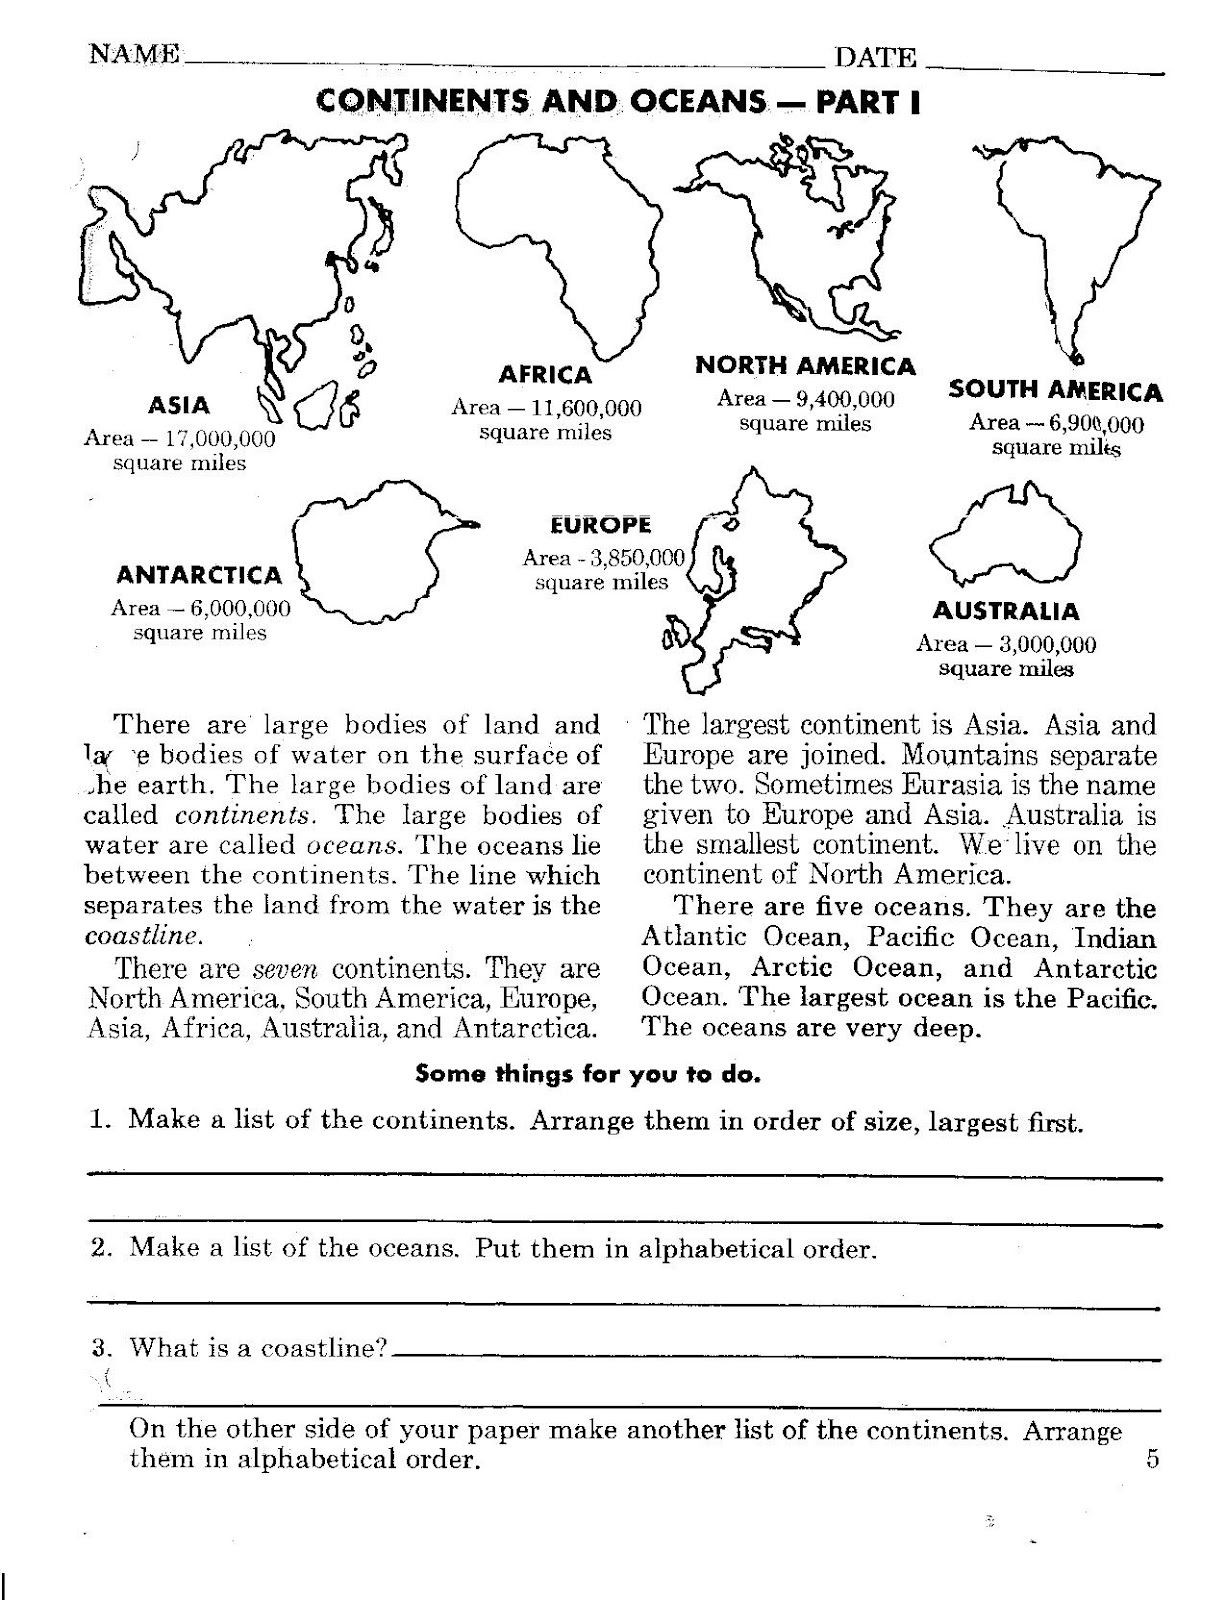 Continents and Oceans Worksheet Continents and Oceans Worksheets